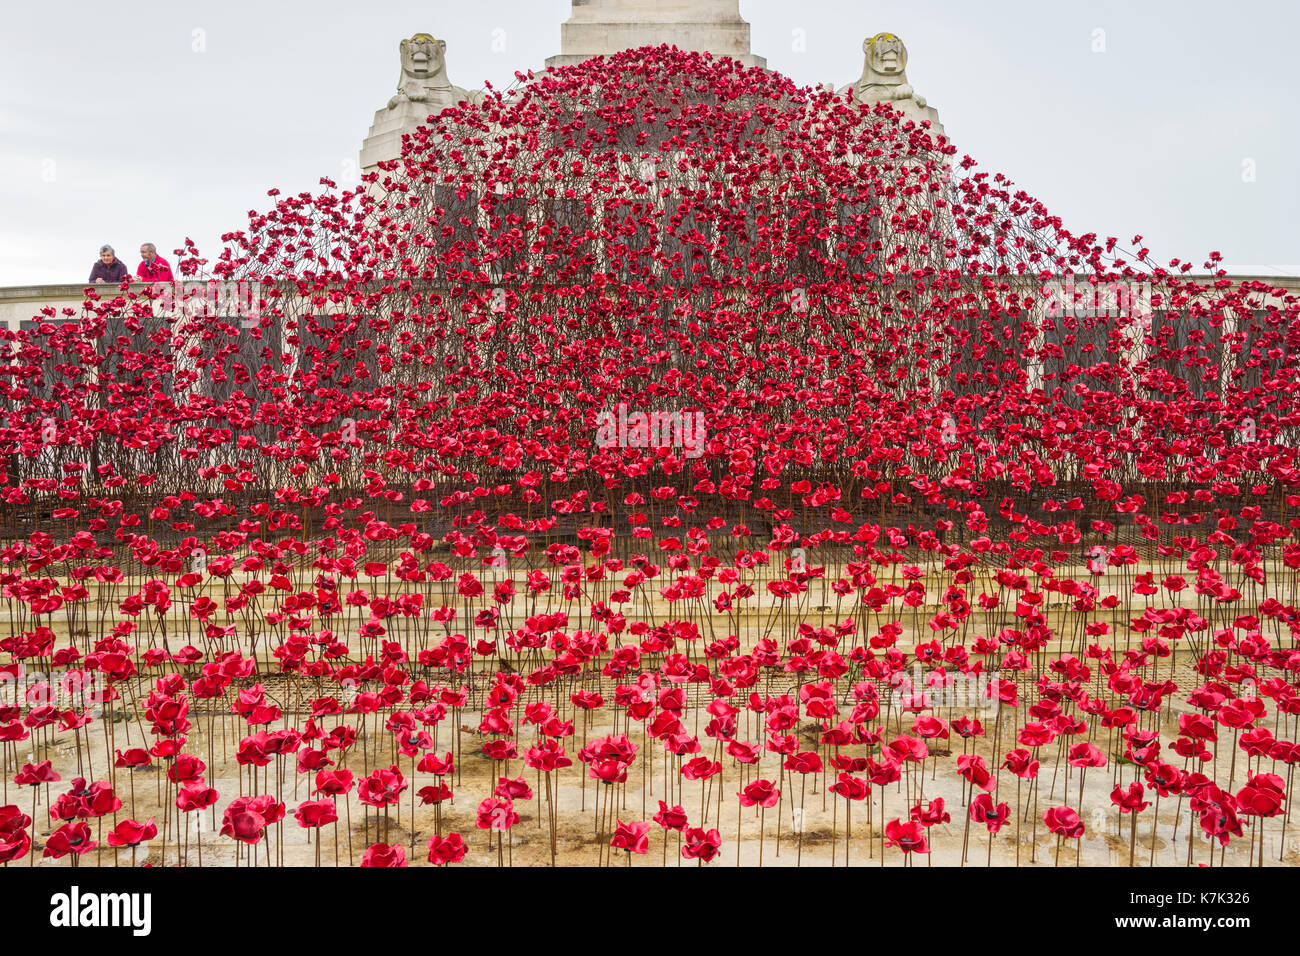 POPPIES: WAVE, vibrant display of ceramic poppies at Plymouth Naval Memorial, Plymouth Hoe, UK.  By artist Paul Cummins and designer Tom Piper. - Stock Image